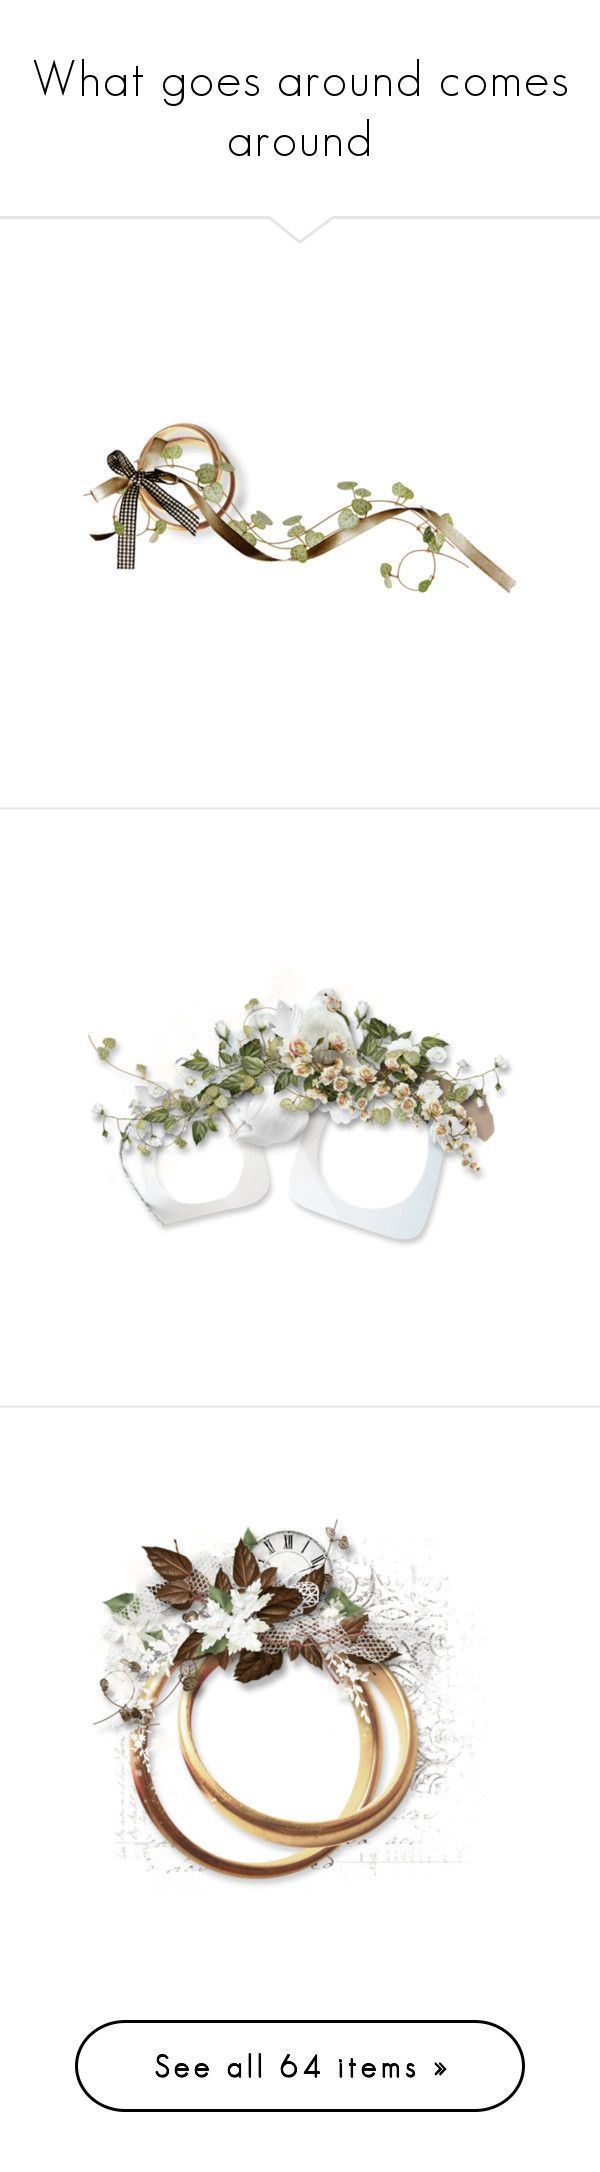 """""""What goes around comes around"""" by kristie-miles ❤ liked on Polyvore featuring frame, flowers, wedding, weddings, filler, borders, picture frame, circles, scrapbook and spring #weddingscrapbooks"""